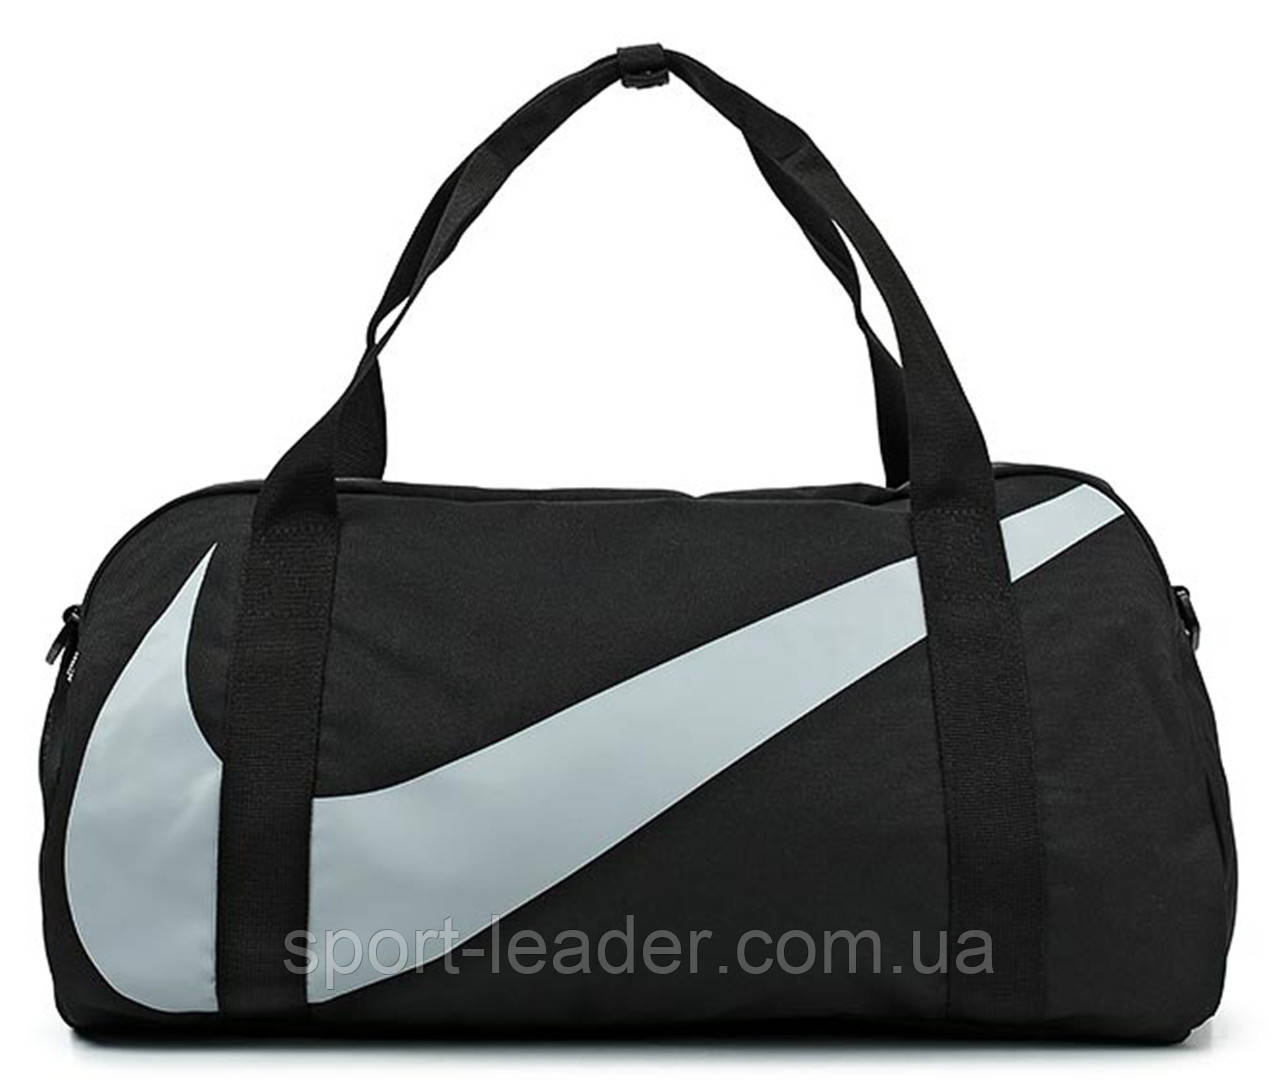 059accd1 Детская сумка Nike Gym Club Kids' Duffel Bag BA5567-010, цена 1 200 ...